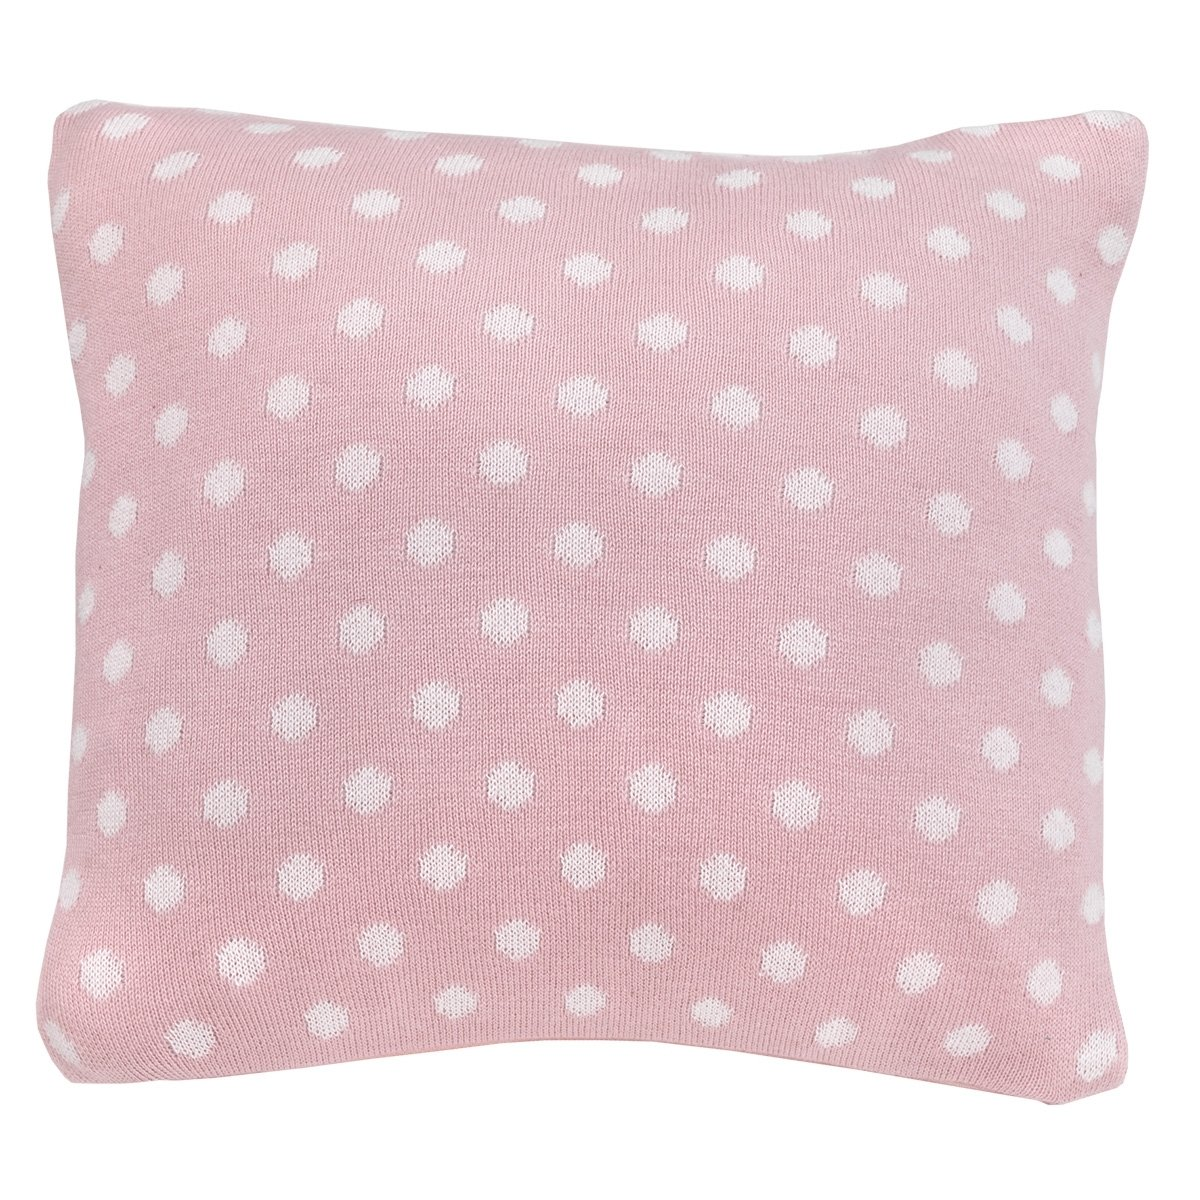 Cambrass Square Pillow Polka Dot Home Decor Pillows Size 30x30 CM Cushions (Pink)